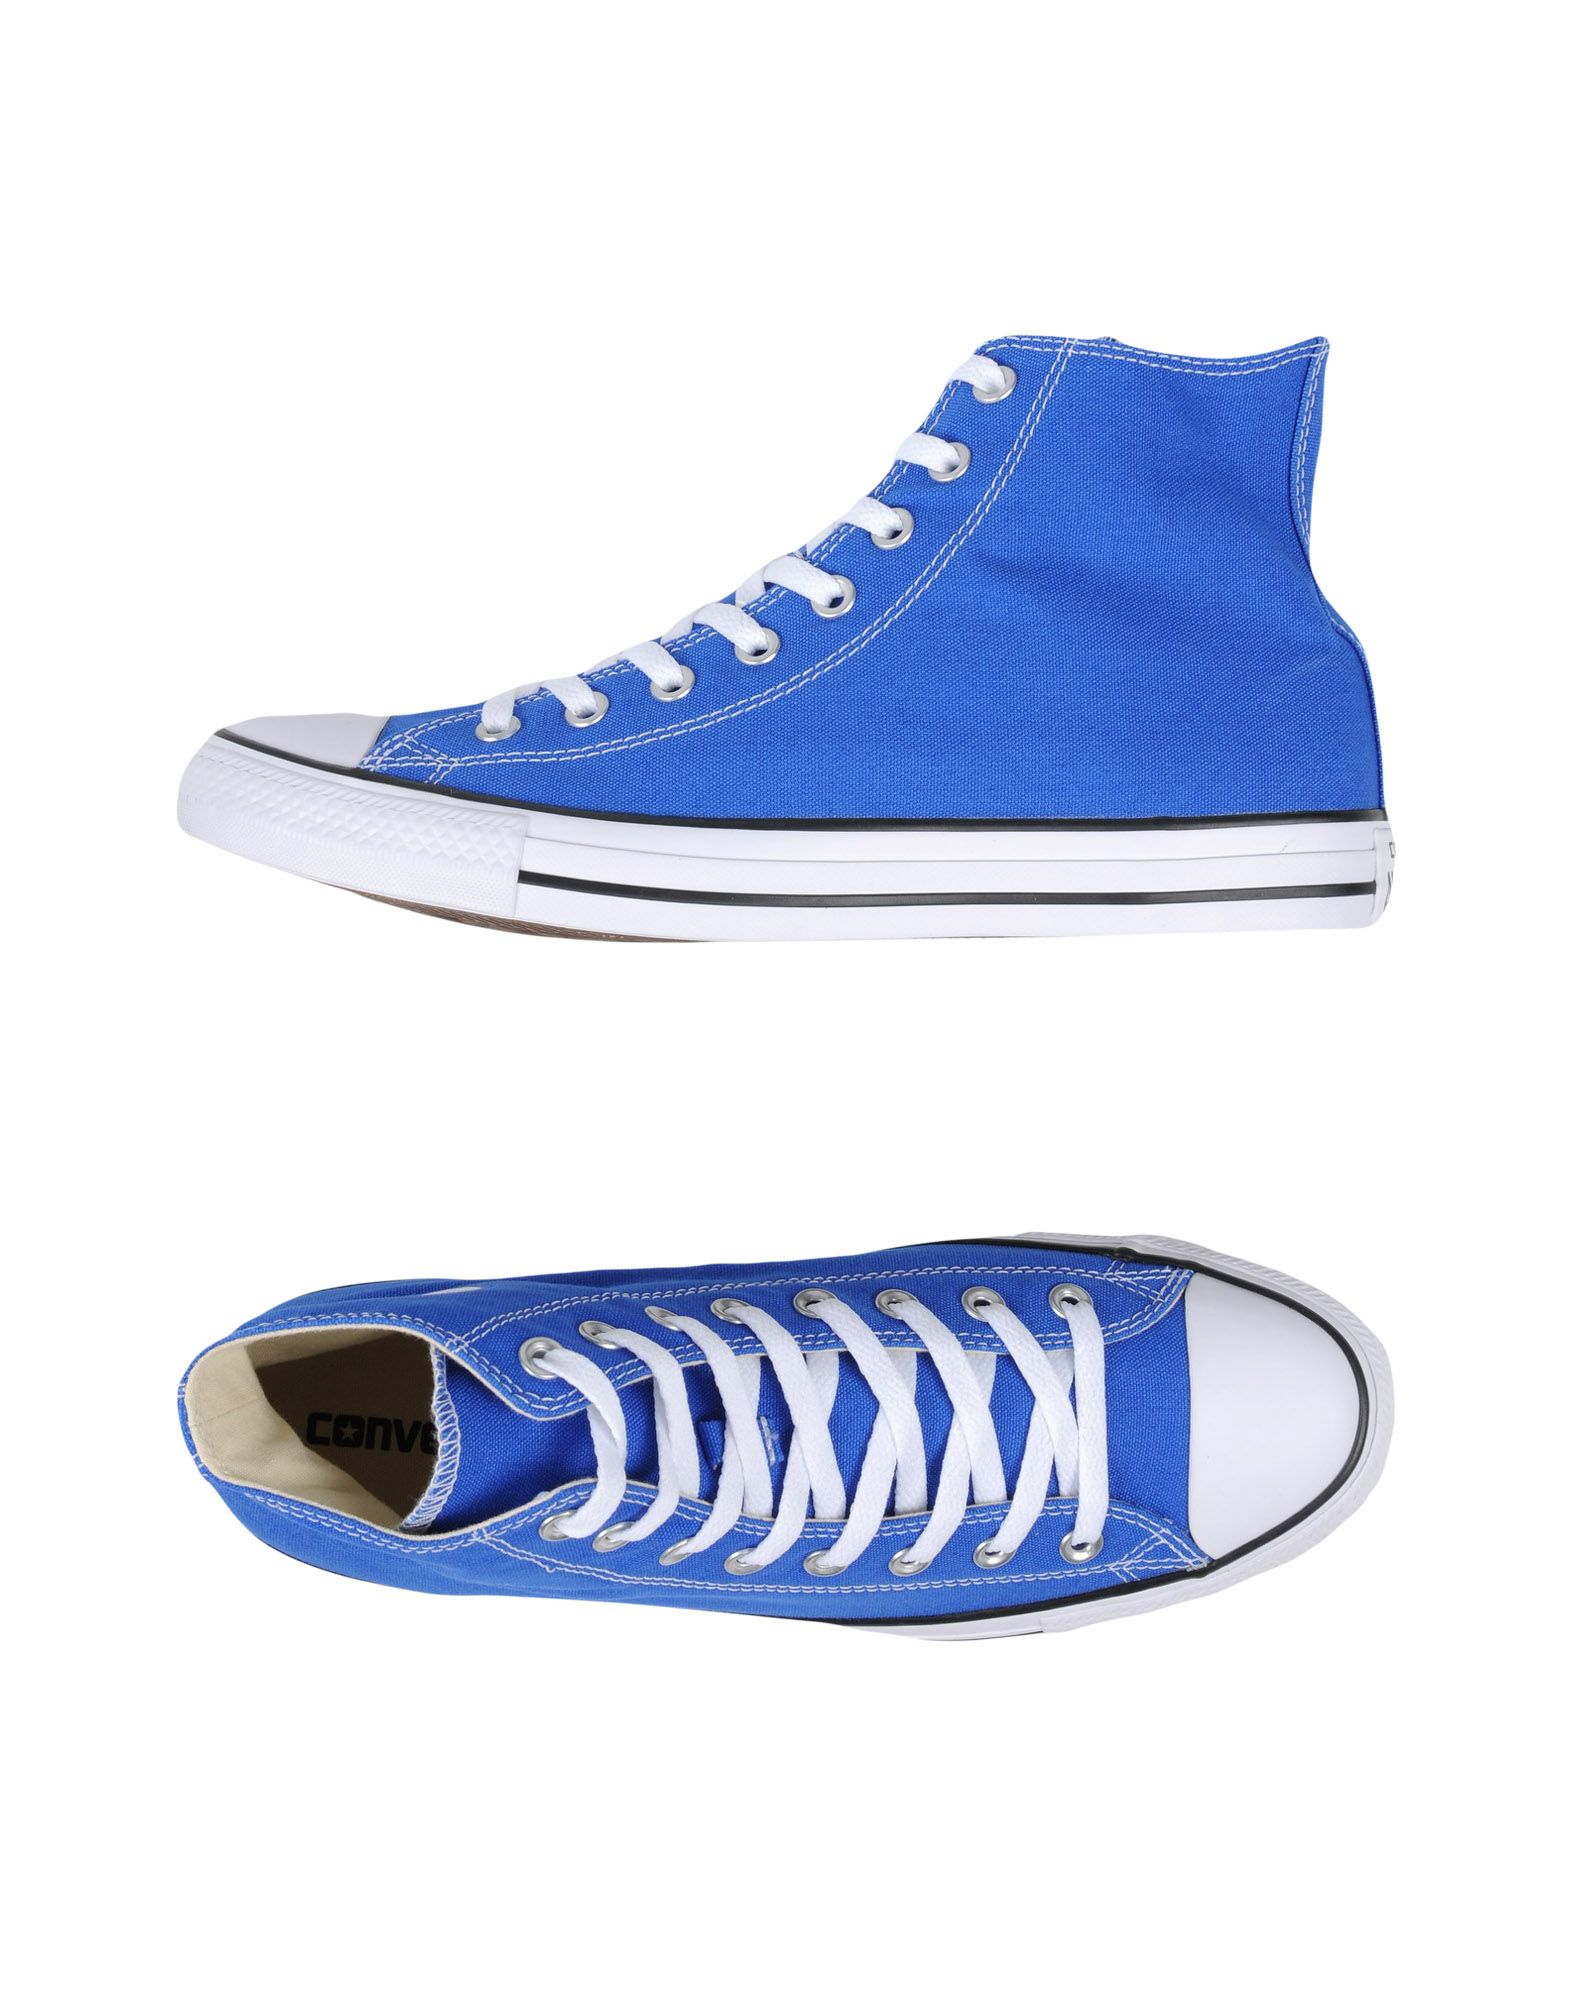 Scarpe da Ginnastica Converse All Star Ctas - Hi Canvas Seasonal Colors - Ctas Uomo - 11437500RL 484533